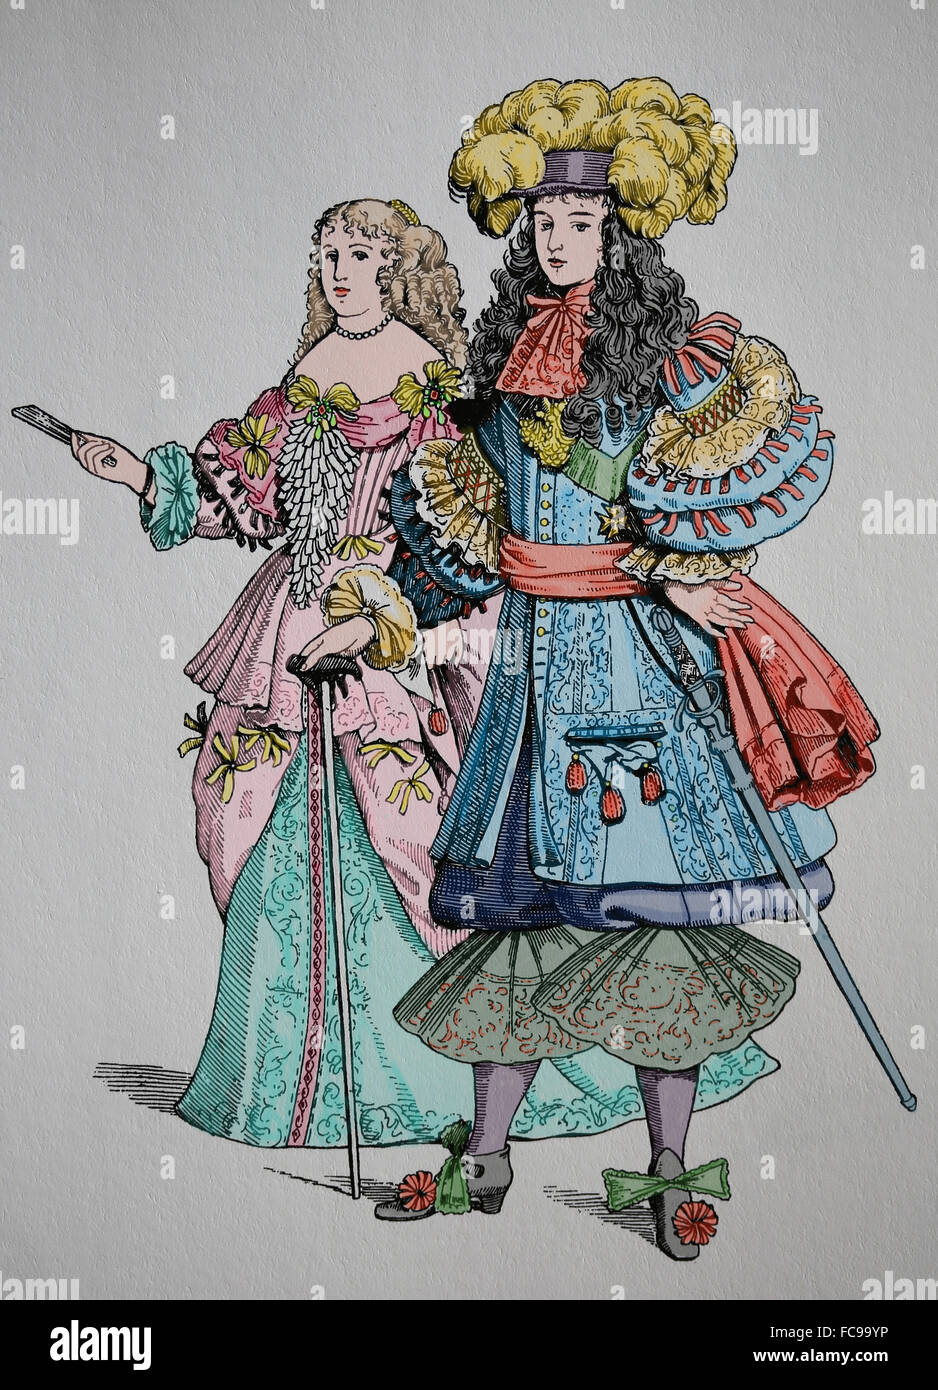 King Louis XIV of France (1638-1715), know the Sun King. House of Bourbon. Absolute monarchical. Engraving. Color. - Stock Image